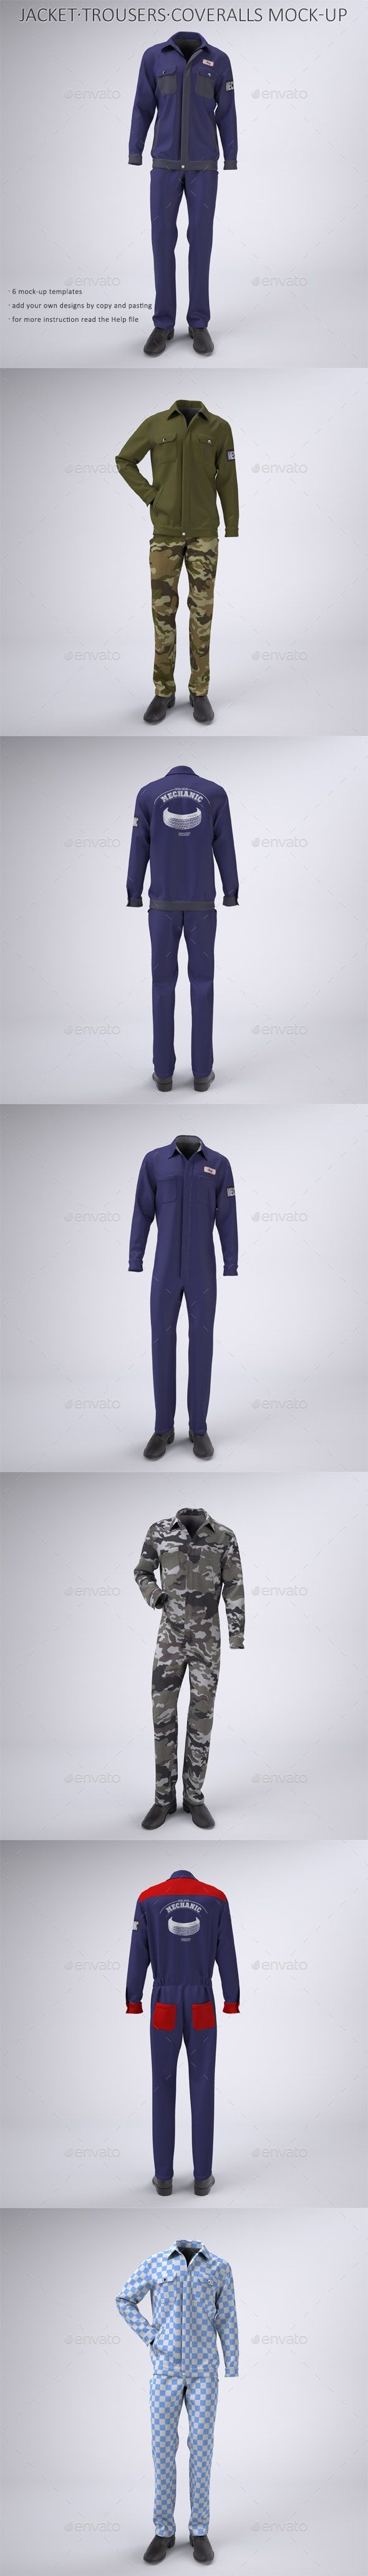 Mechanic Work Uniform With Jacket And Coveralls Mock Up Work Uniforms Clothing Mockup Coveralls